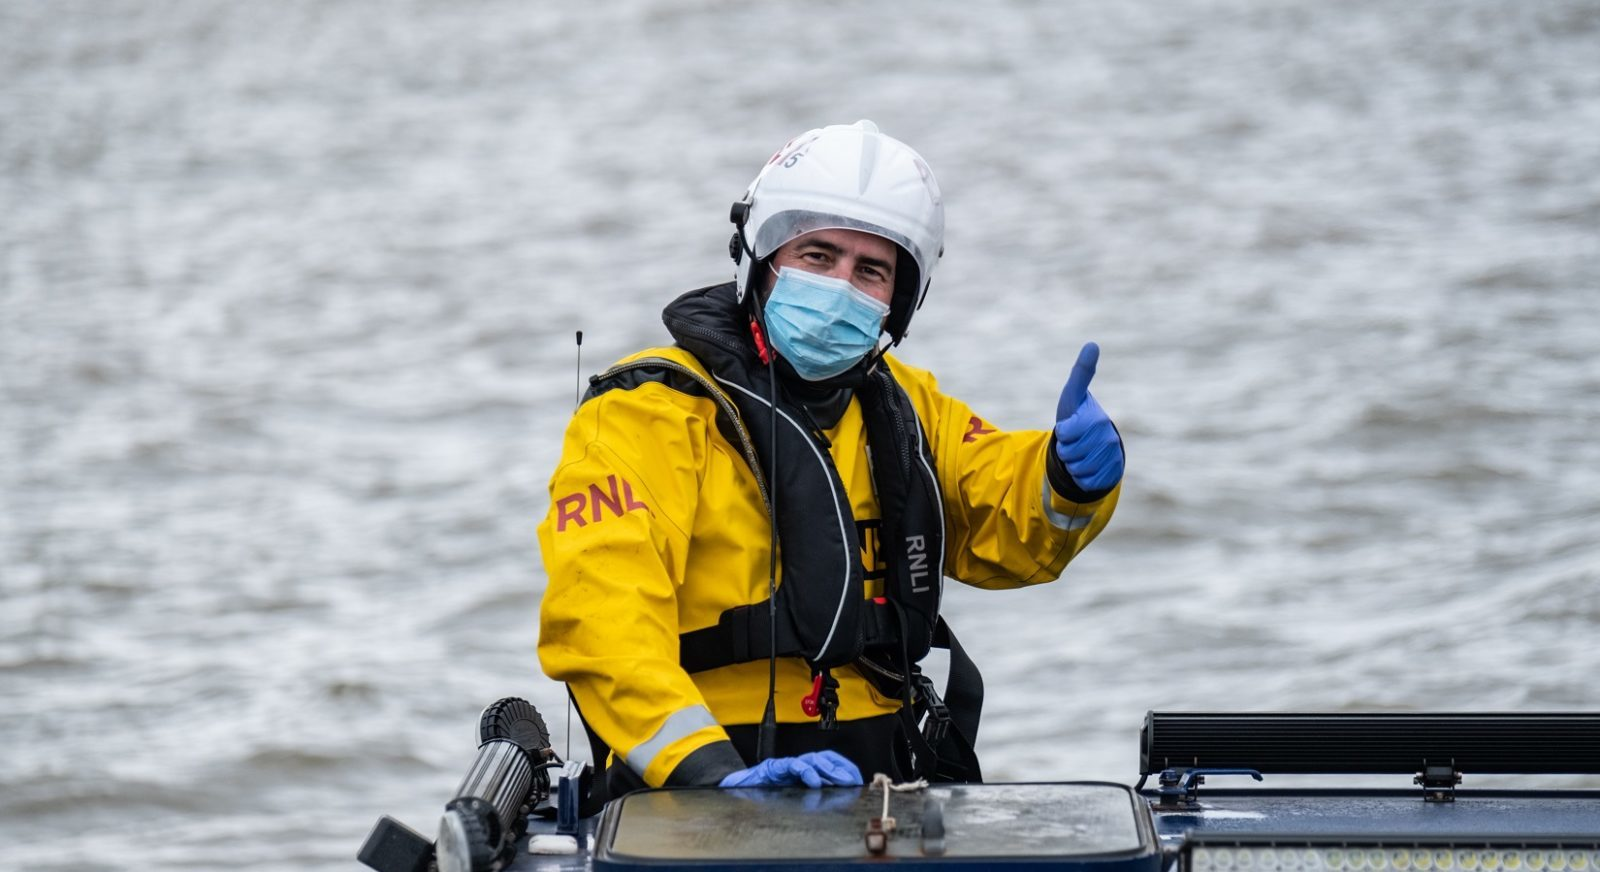 West-Kirby-Crew-Member-Adie-Gregan-who-was-involved-in-Wendys-rescue-wearing-a-face-mask-and-gloves-and-giving-a-thumbs-up-from-the-stations-launching-vehicle